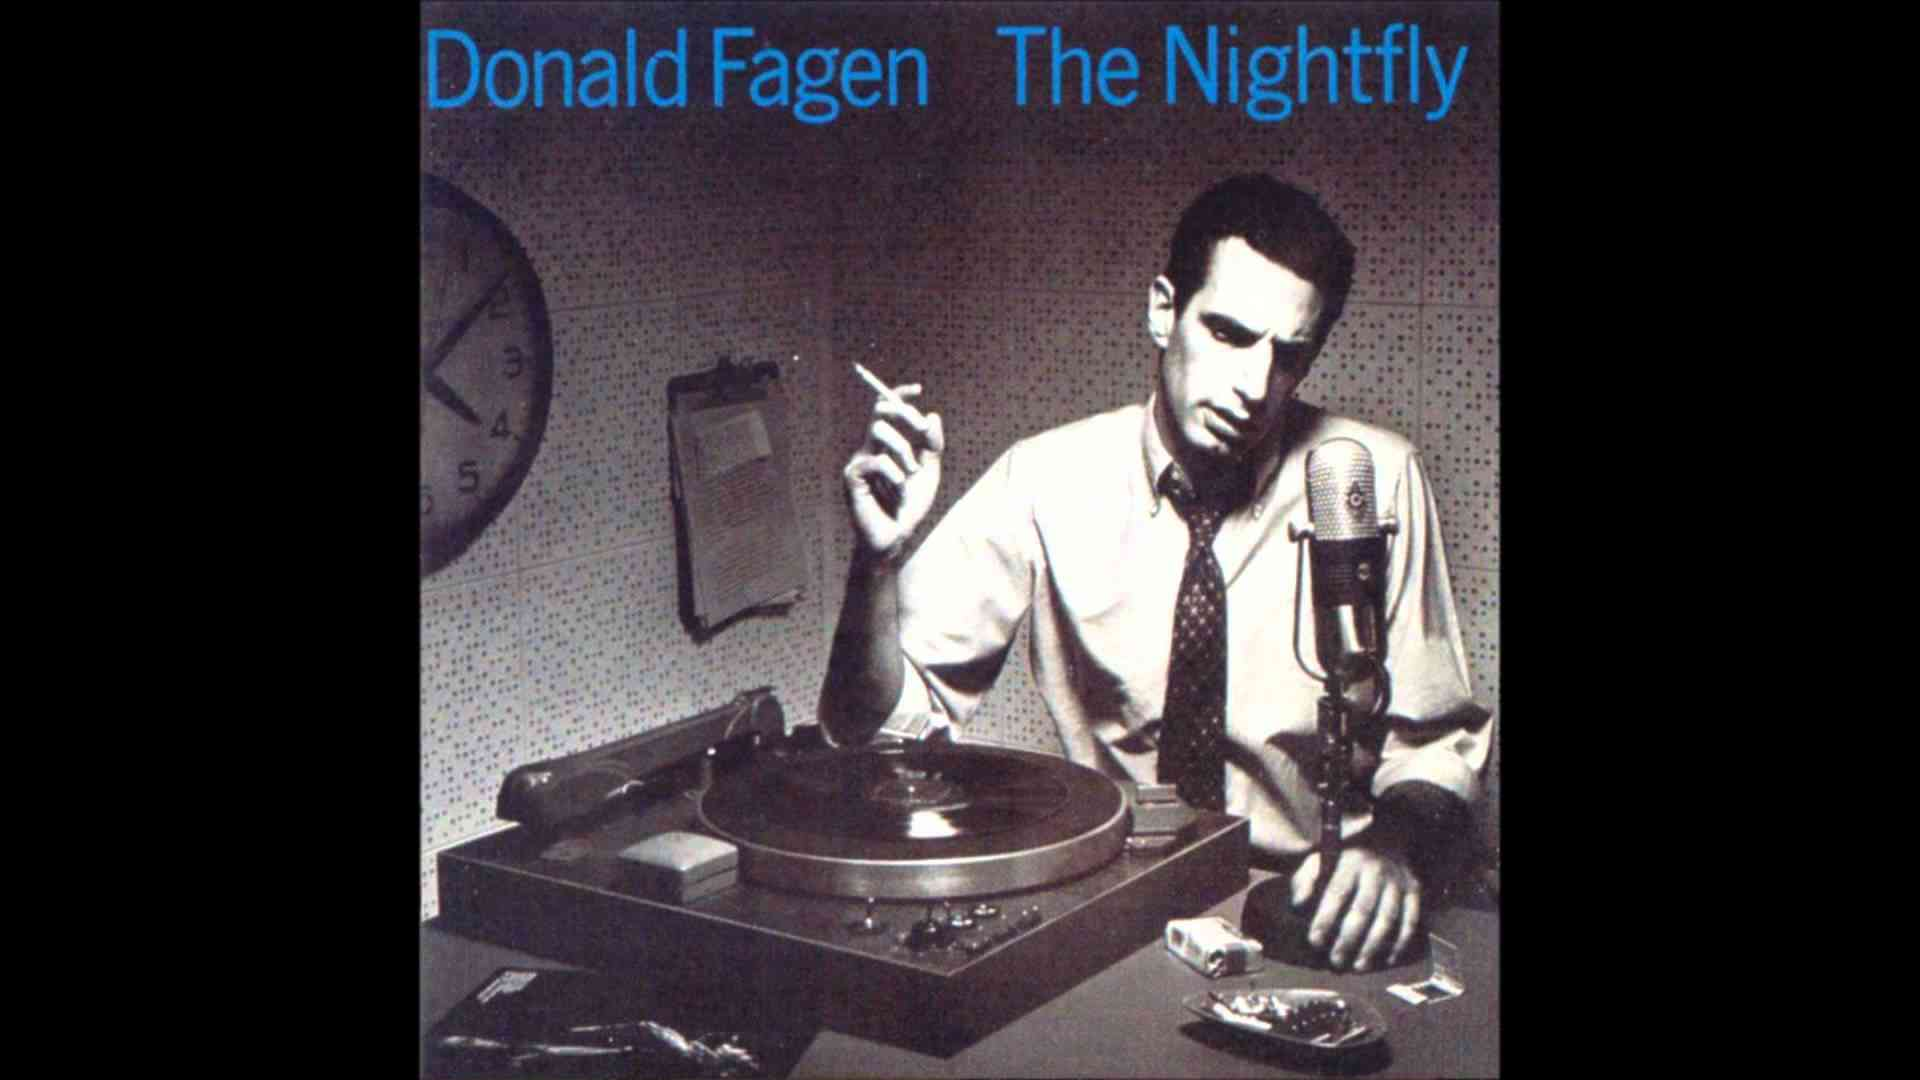 Donald Fagen The Nightfly (HQ) - YouTube